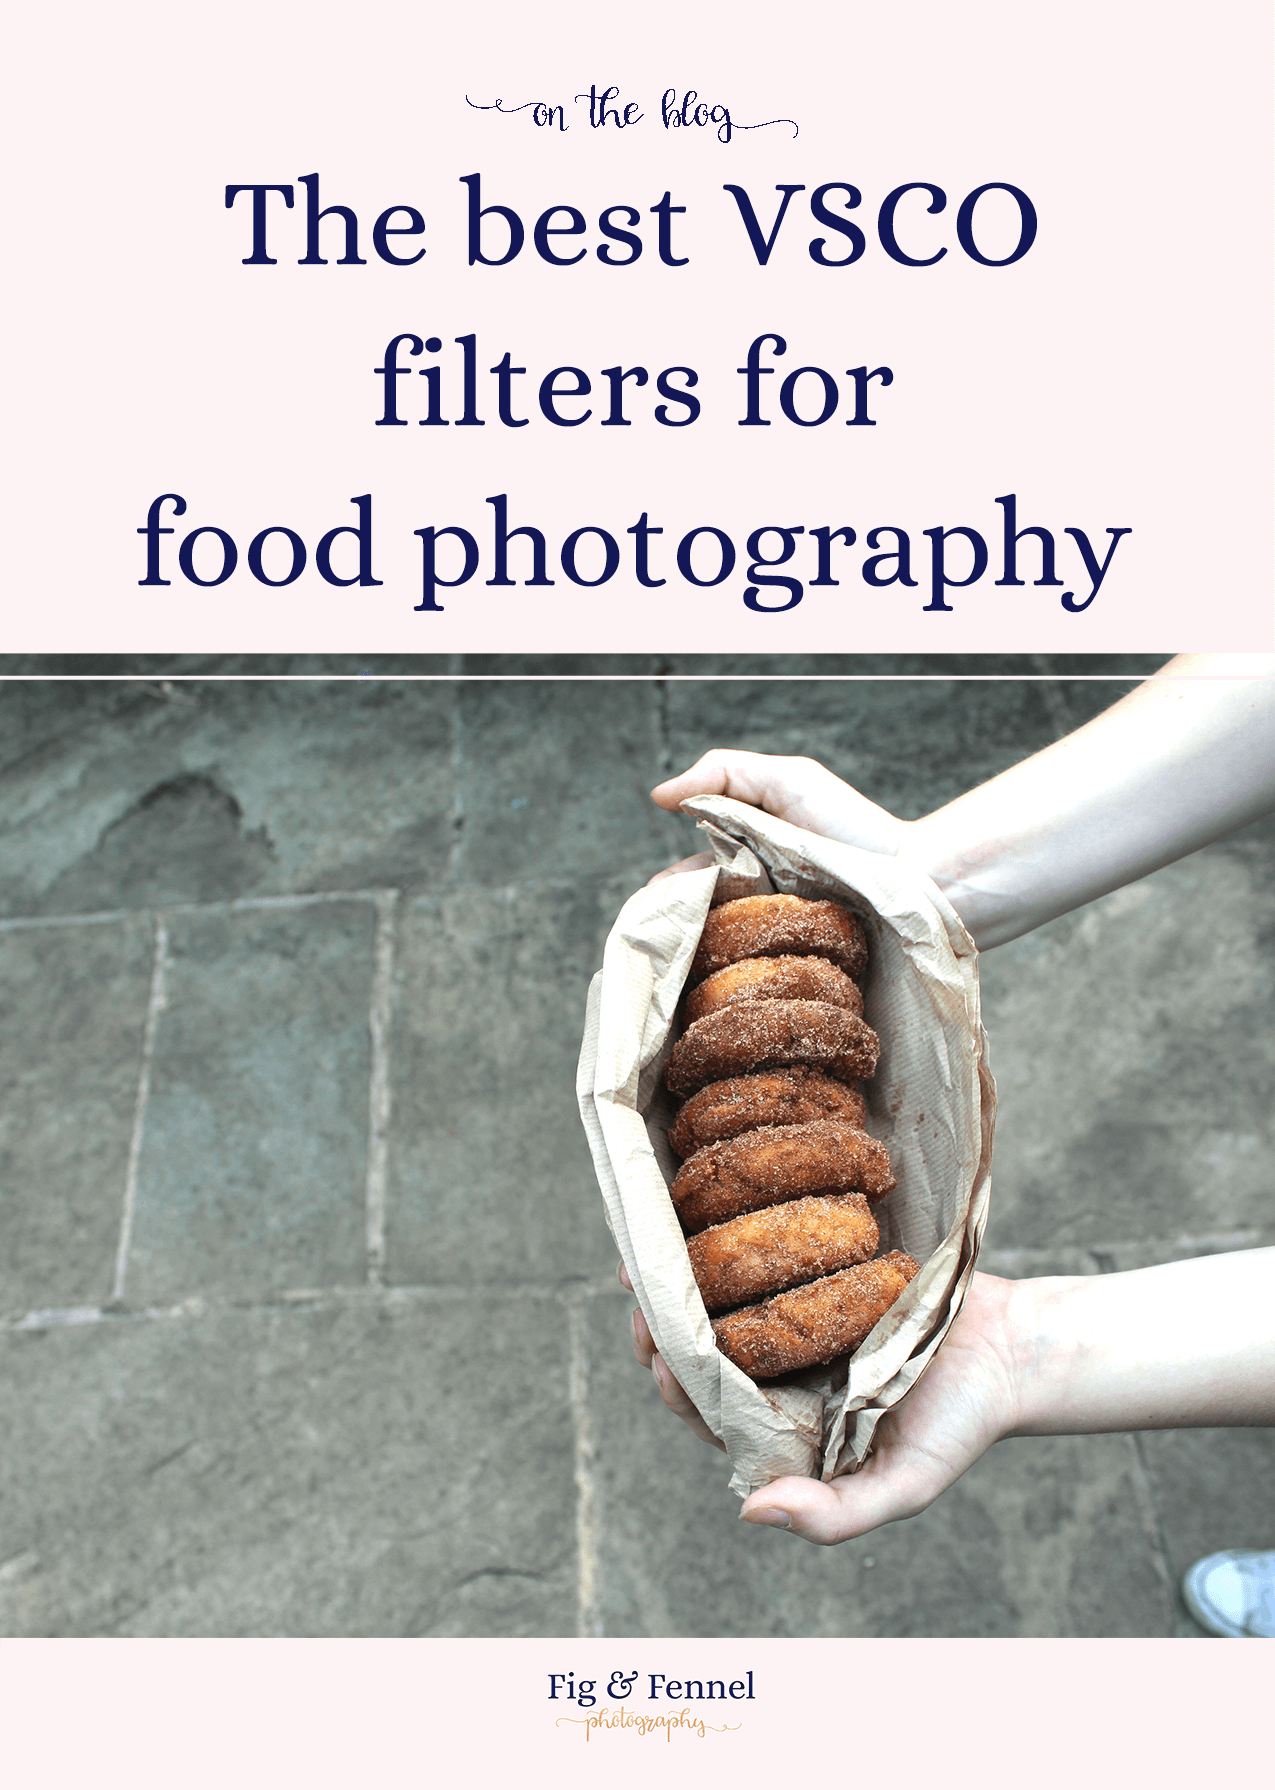 https://figandfennel.photography/blog/the-best-vsco-filters-for-food-photography/